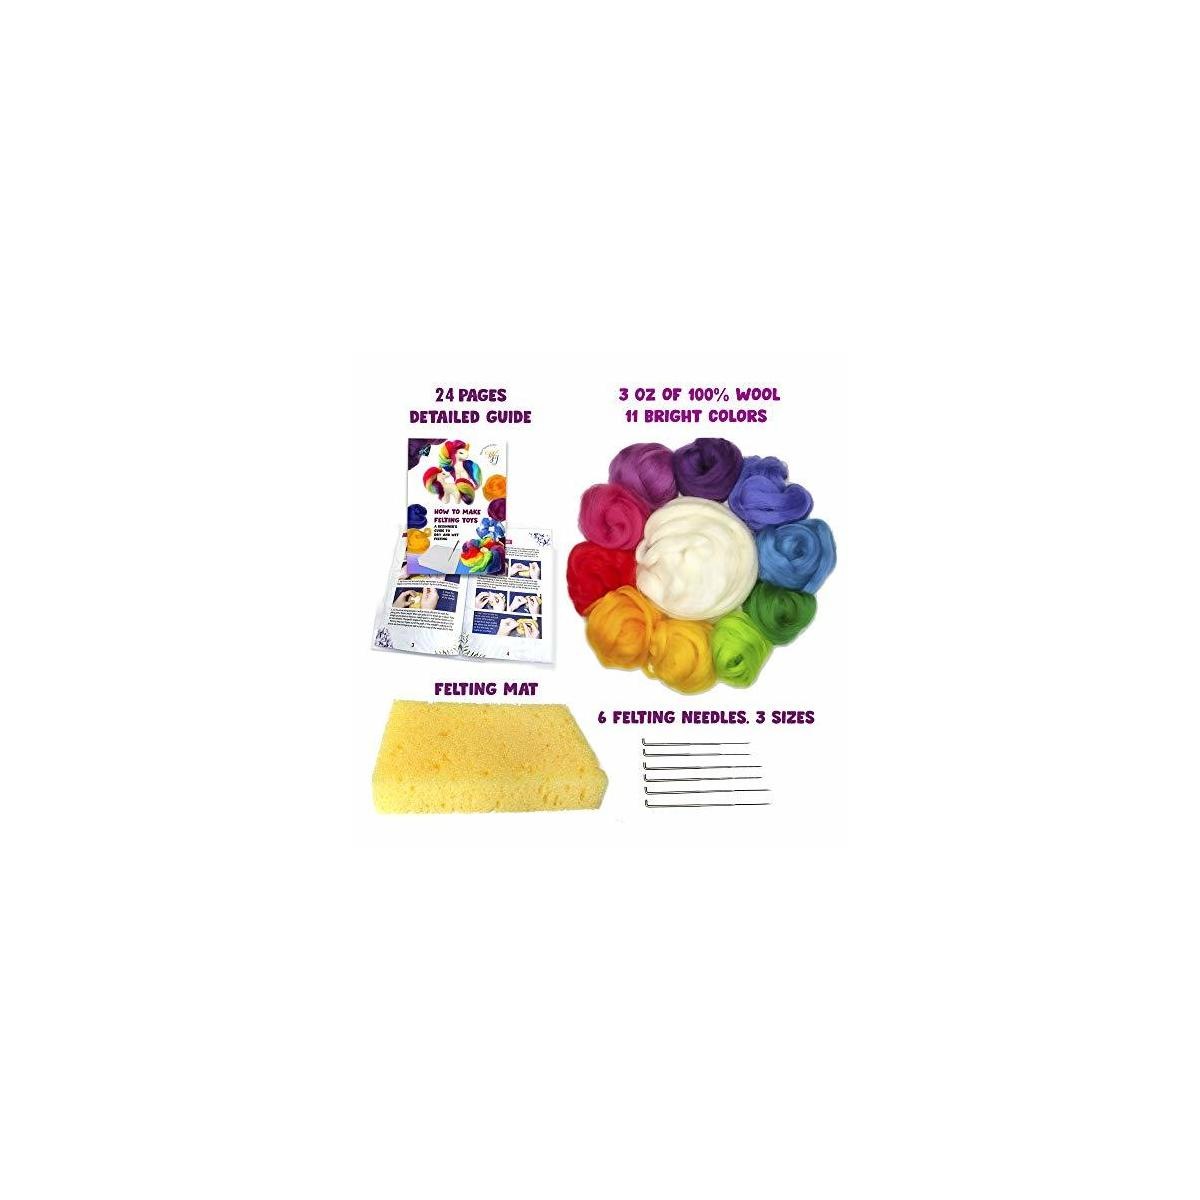 Needle Felting Kit : Felting Needles, Wool Roving, Felting Pad, Detailed Guide - Make 3+ Rainbow Unicorns and 10+ Flowers - Felting Art Kit - DIY kit Felting Supplies Craft Kit for Girls and Moms